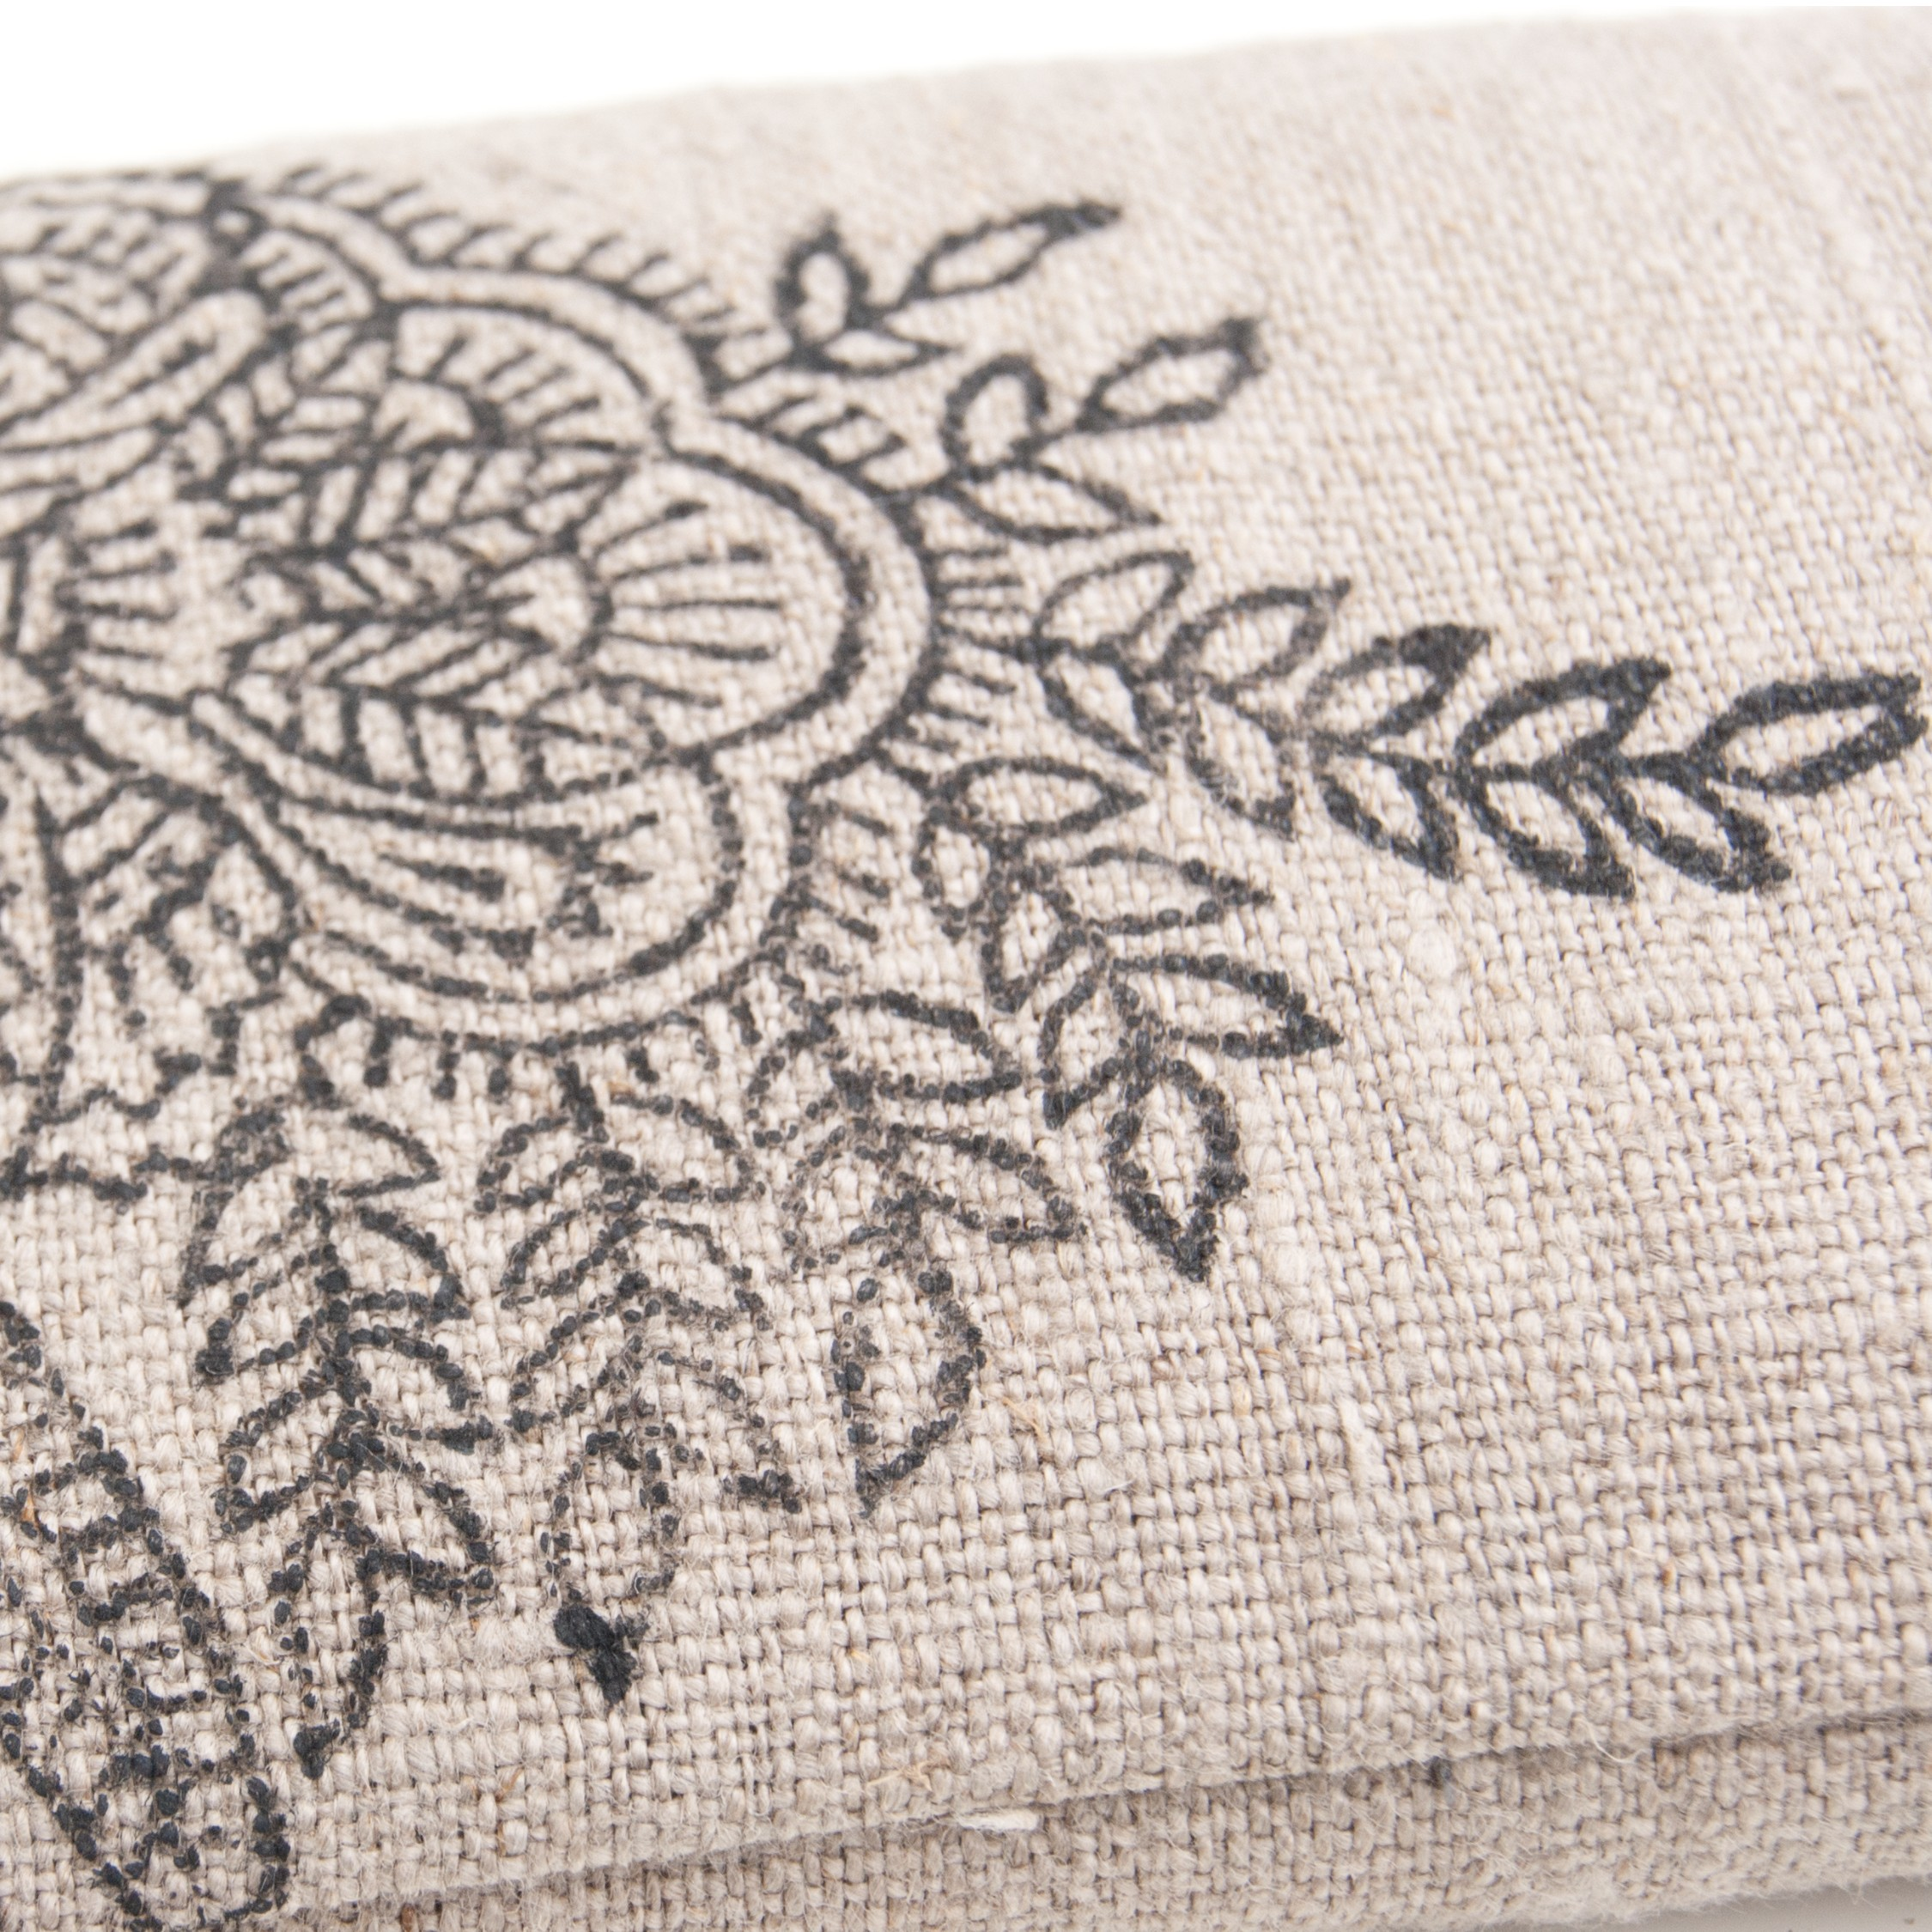 Handprinted flower on eye pillow by Pure Prana Label